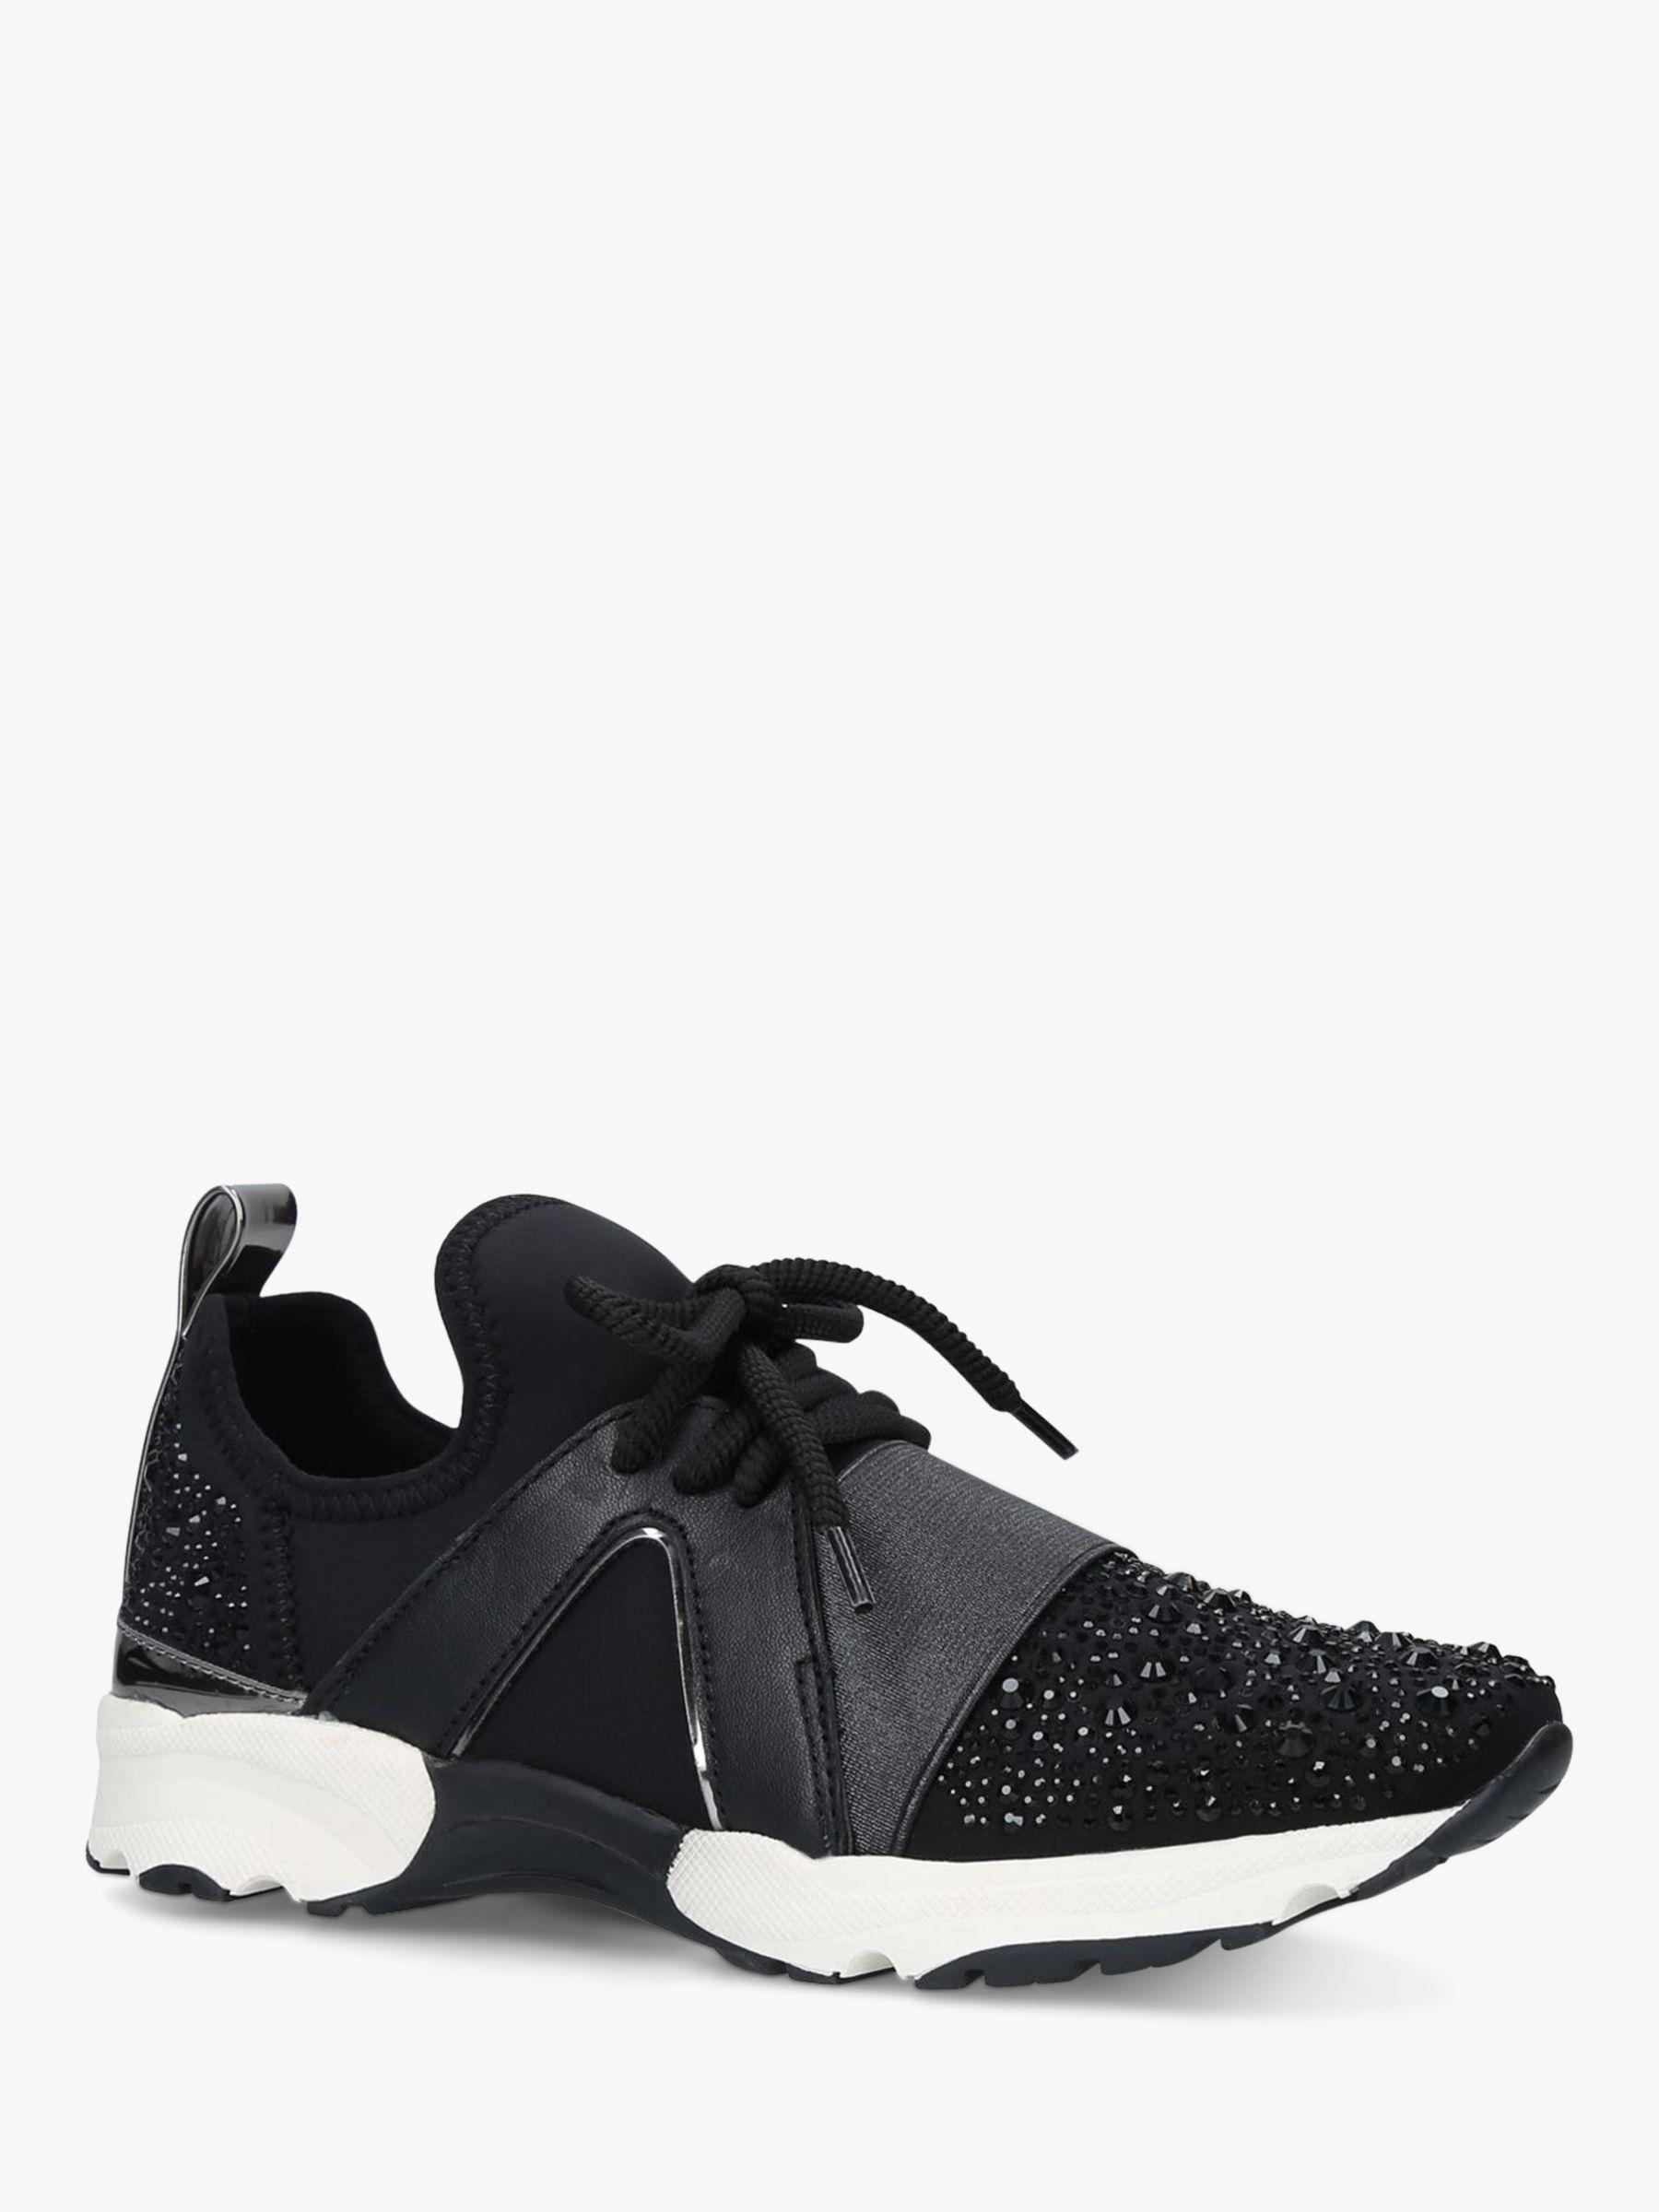 Lament Bling Lace Up Trainers in Black